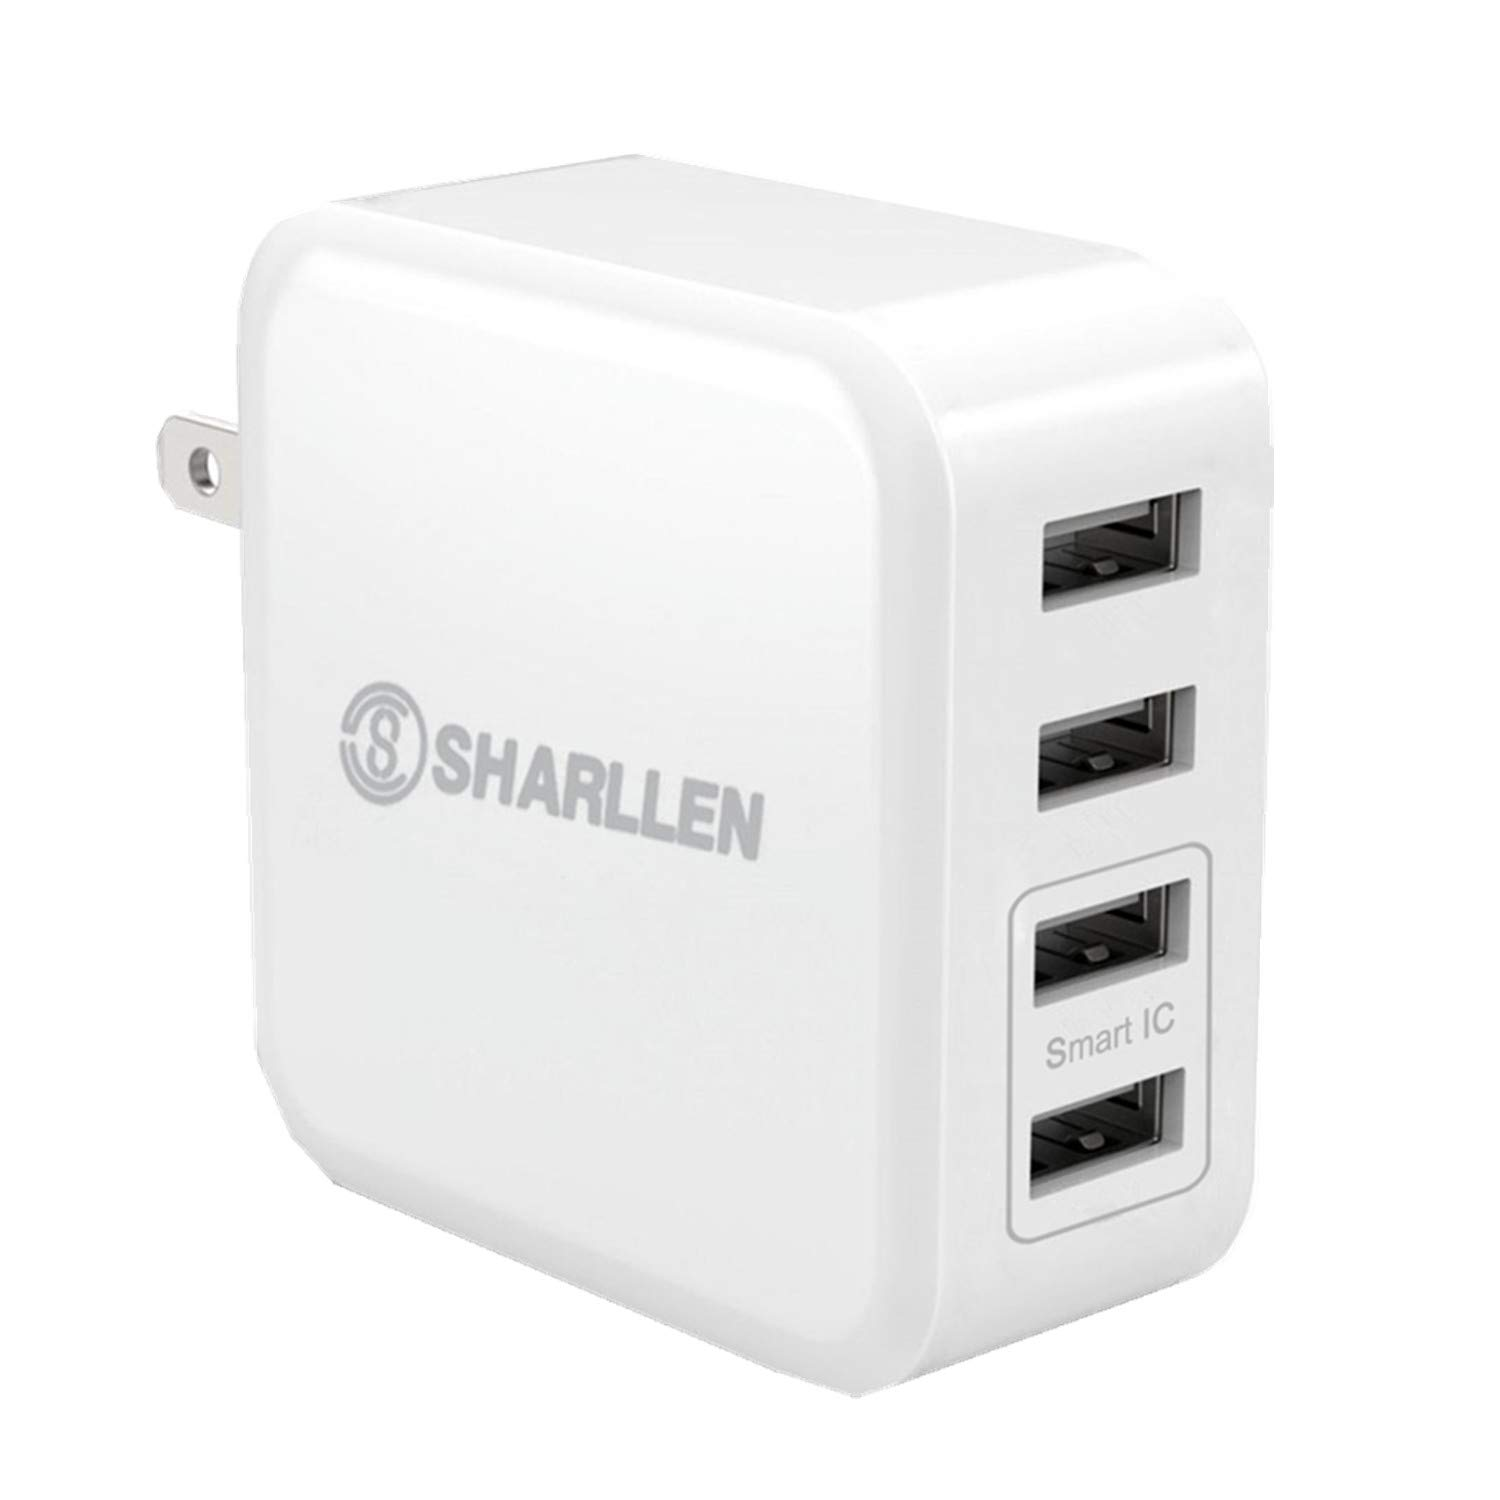 iPad and More Note 8 7 Rocketek USB Quick Charger Wall Charger Galaxy S10 S9 S8 Edge Plus 30W QC 3.0 Fast Charger 3 USB Port Wall Power Plug Adapter for iPhone Xs XS Max XR X 8 7 6 Plus Nexus